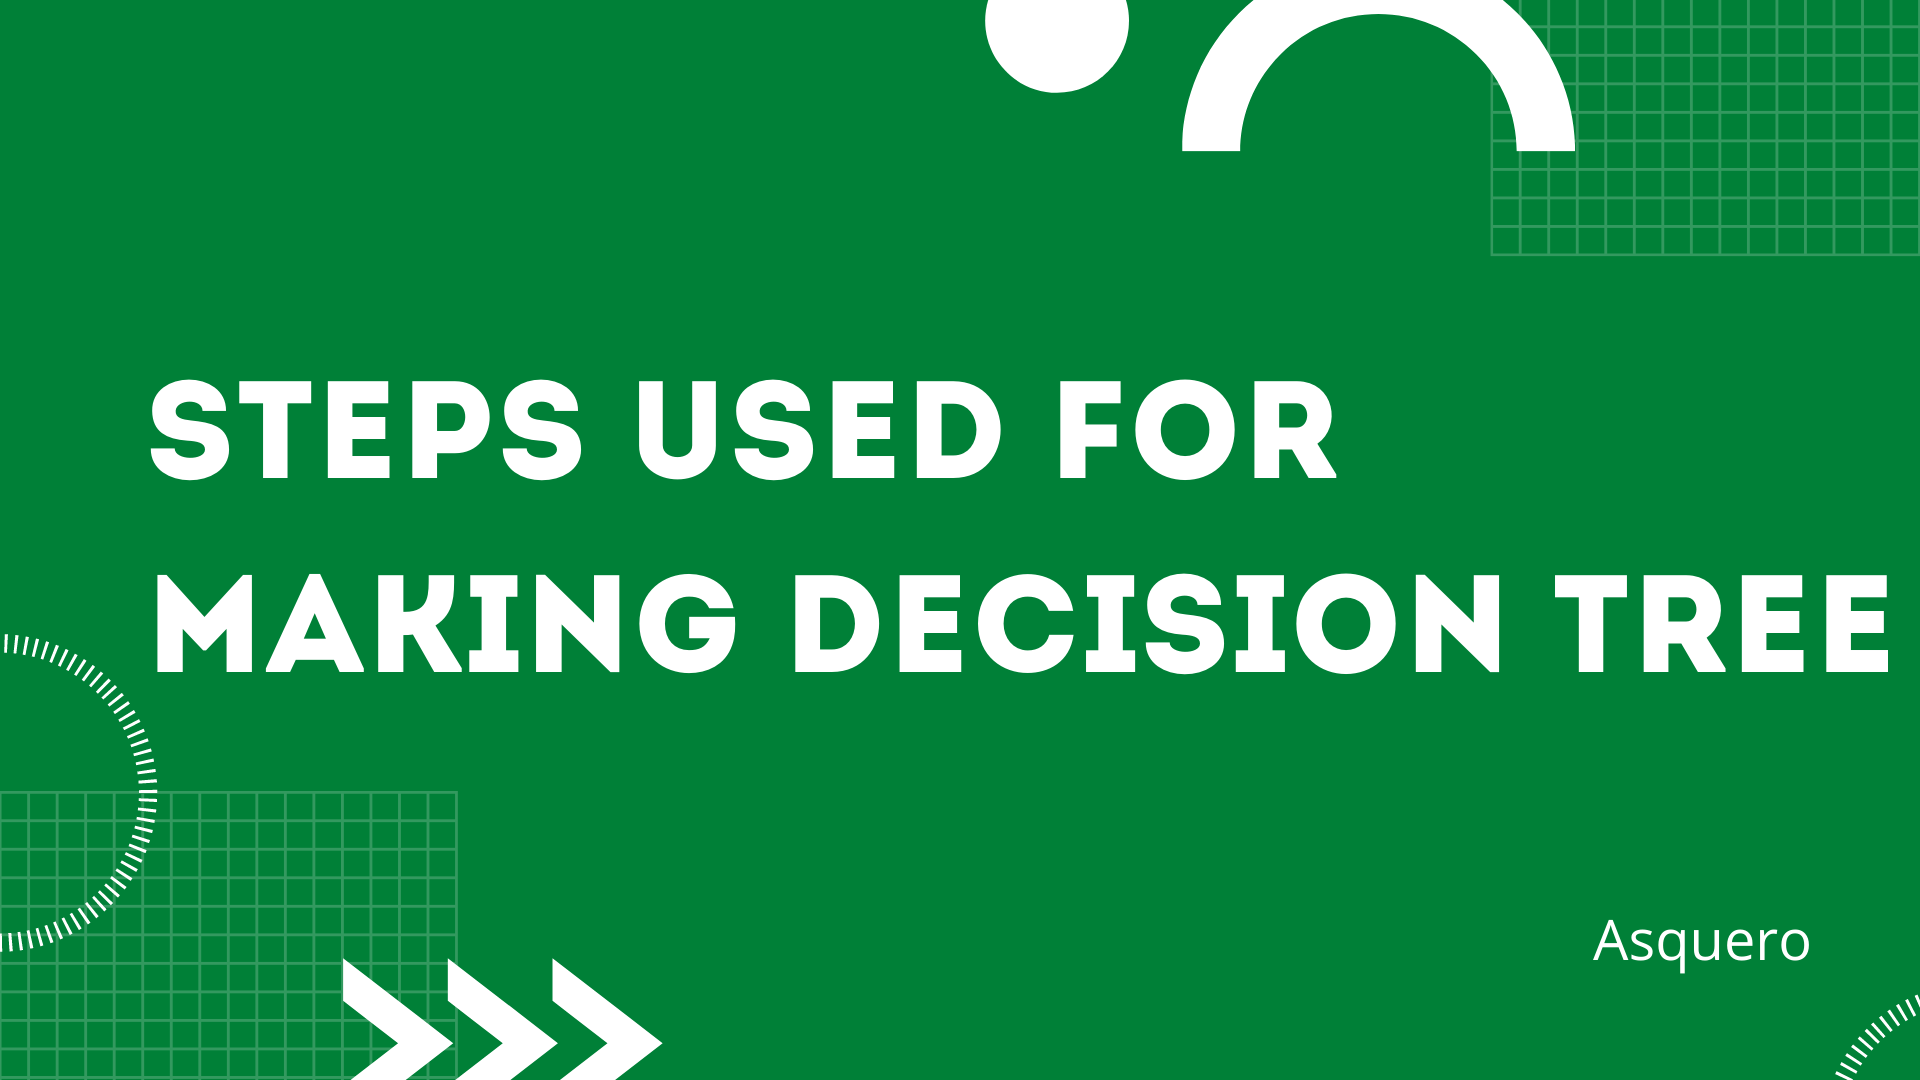 Steps used for making Decision Tree